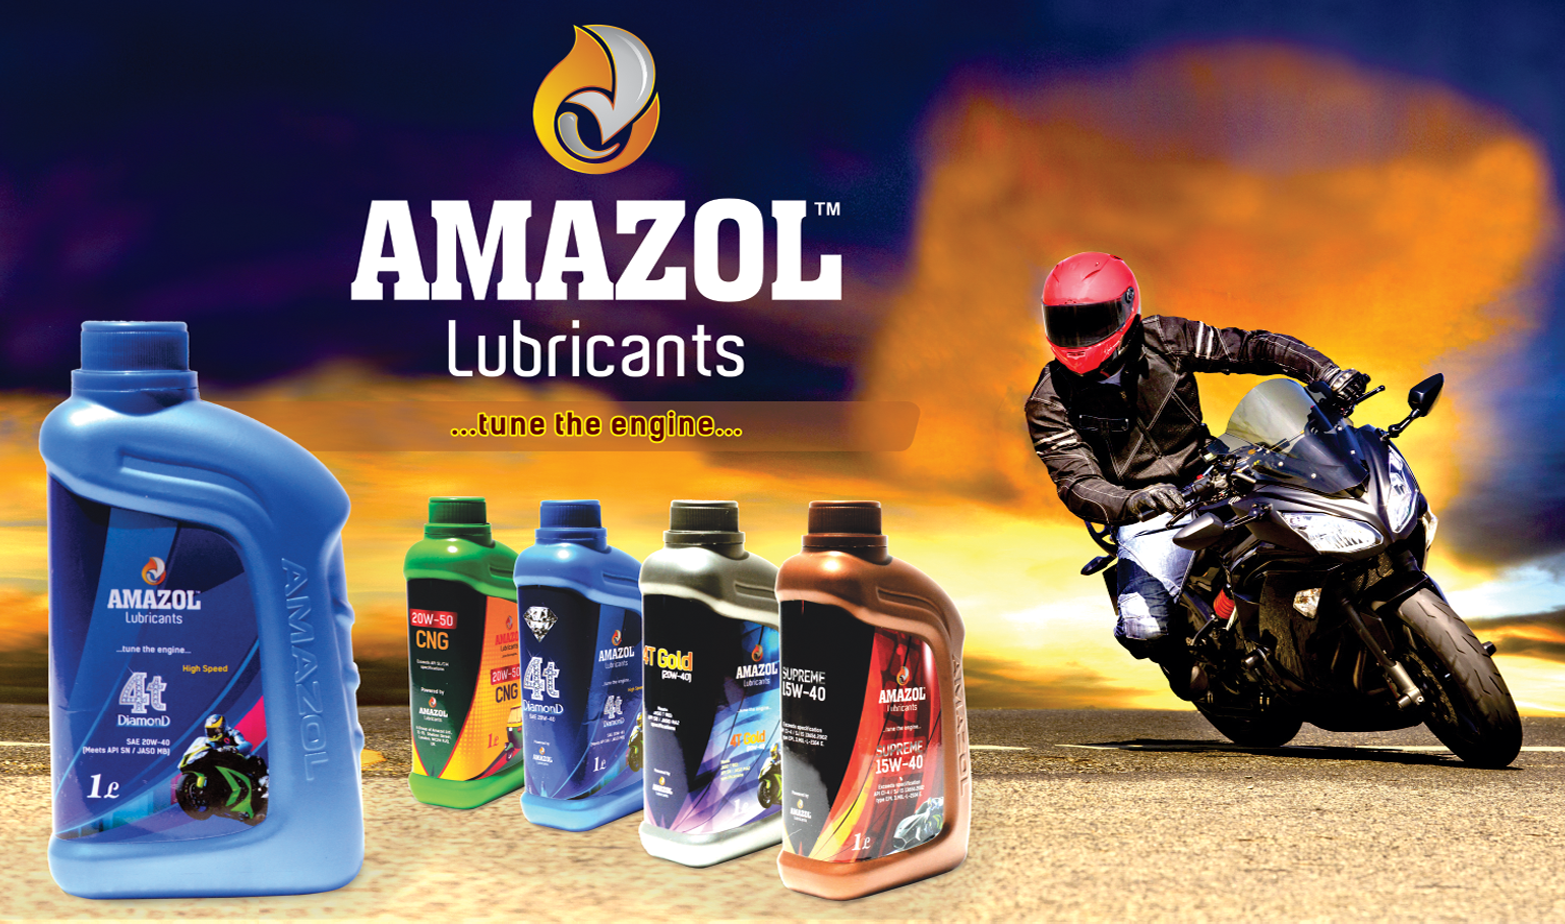 amazol lubricants we offer a large selection of lubricant grades